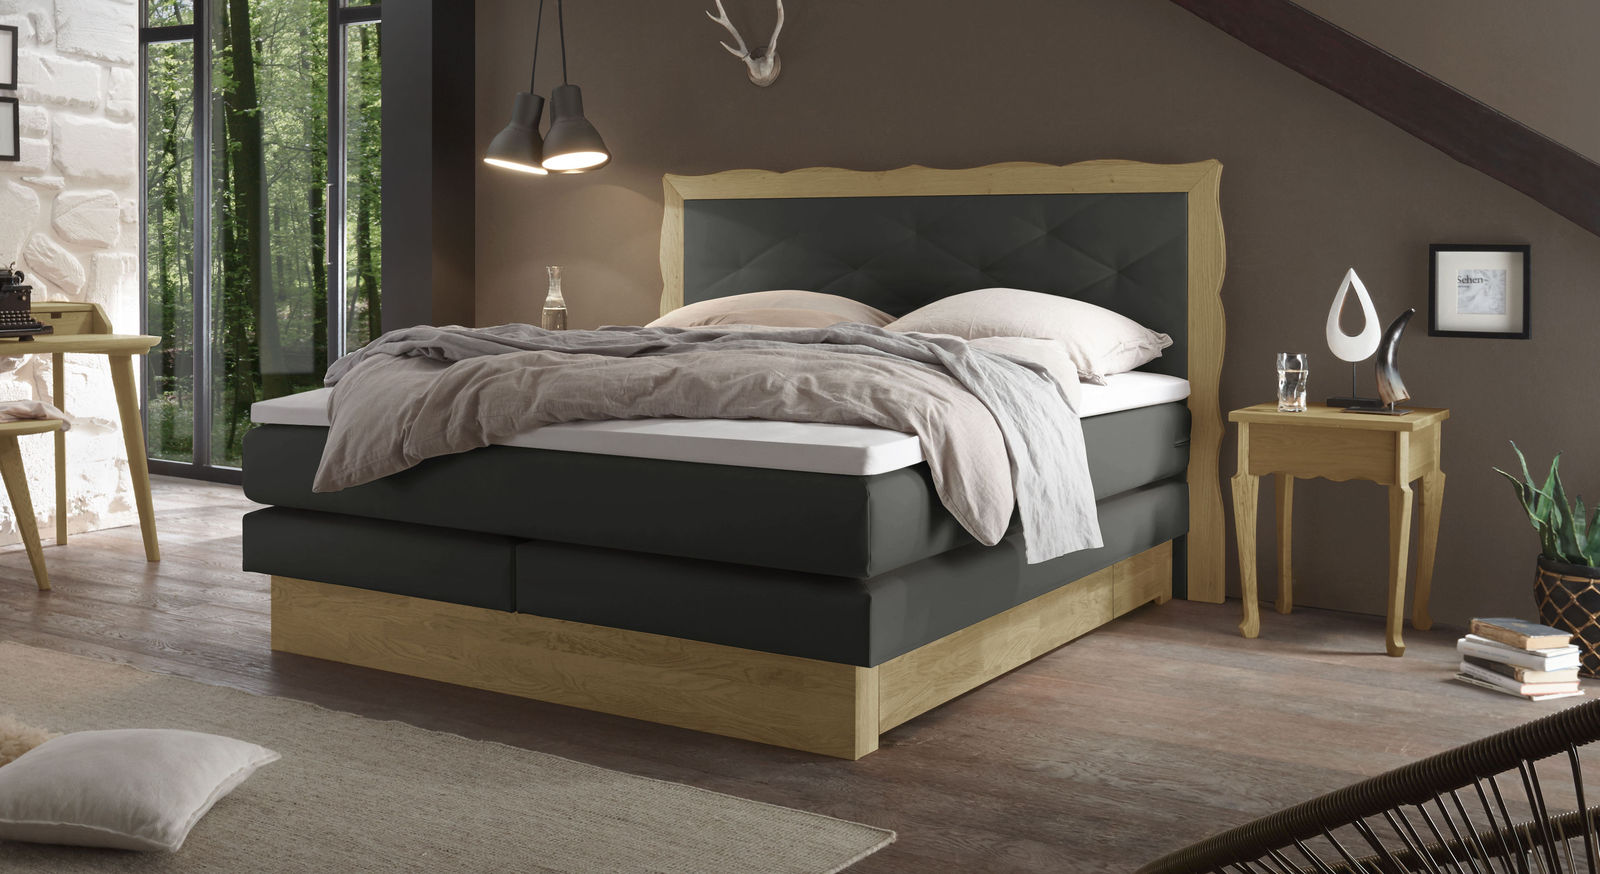 Boxspringbett Gradina in anthrazitfarbenem Luxus-Kunstleder